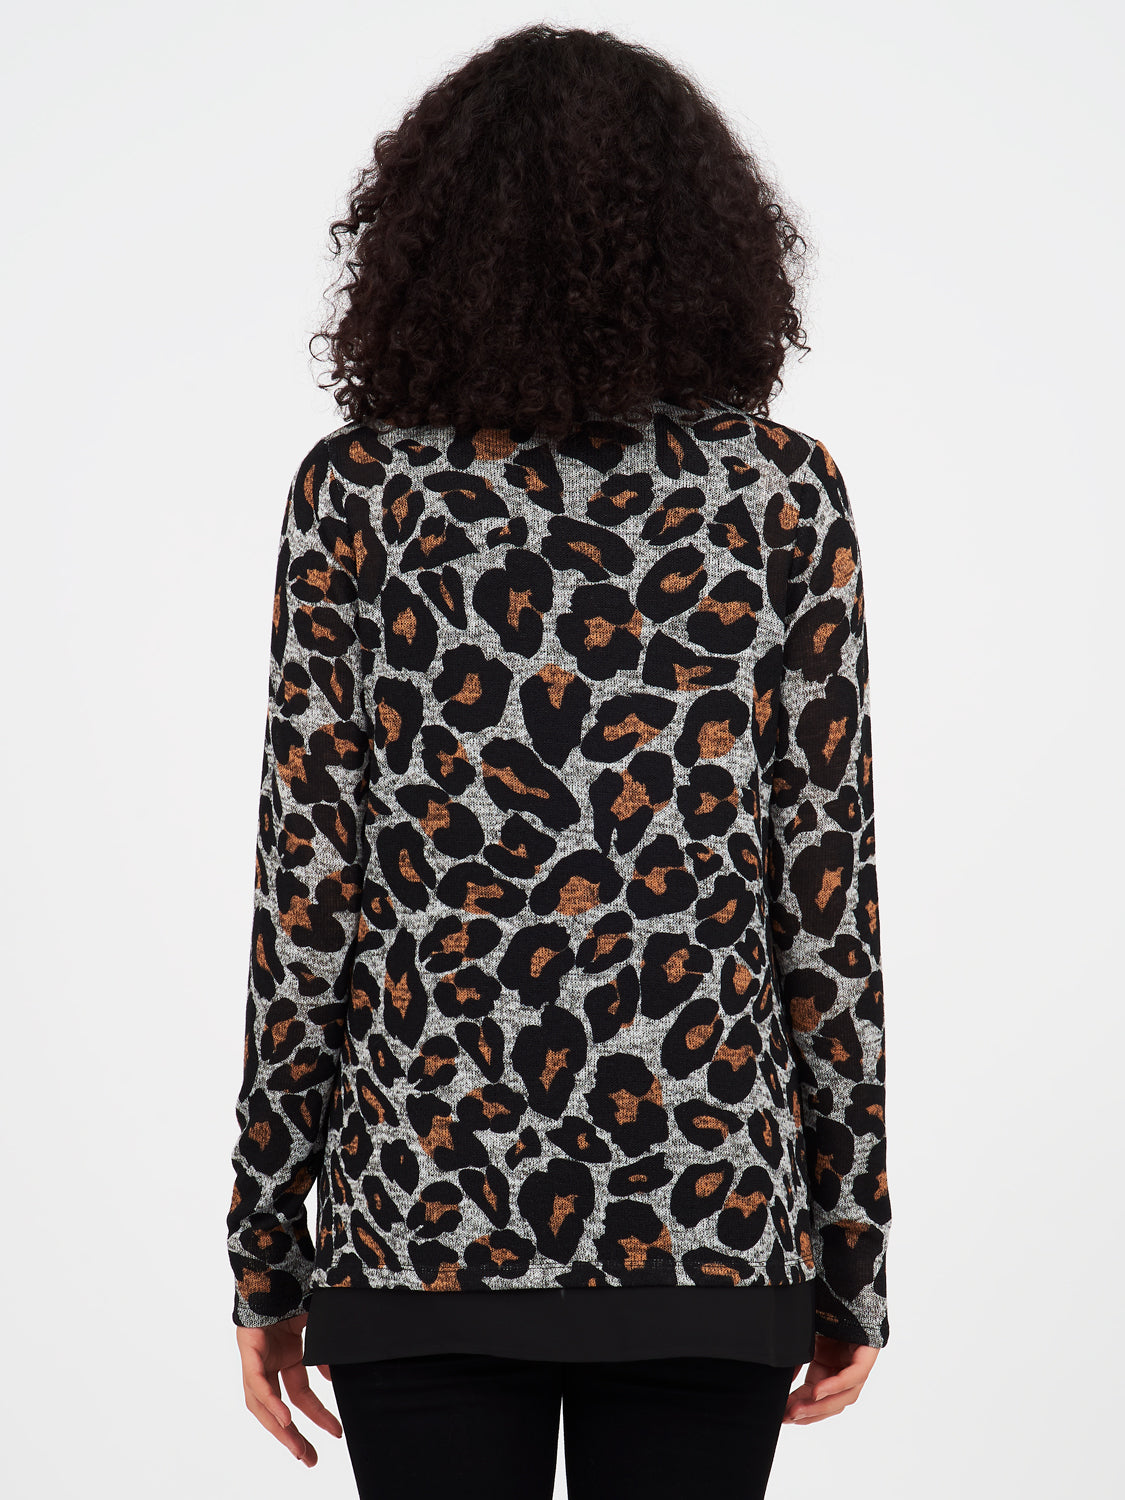 2fer Double Layer Leopard Sweater